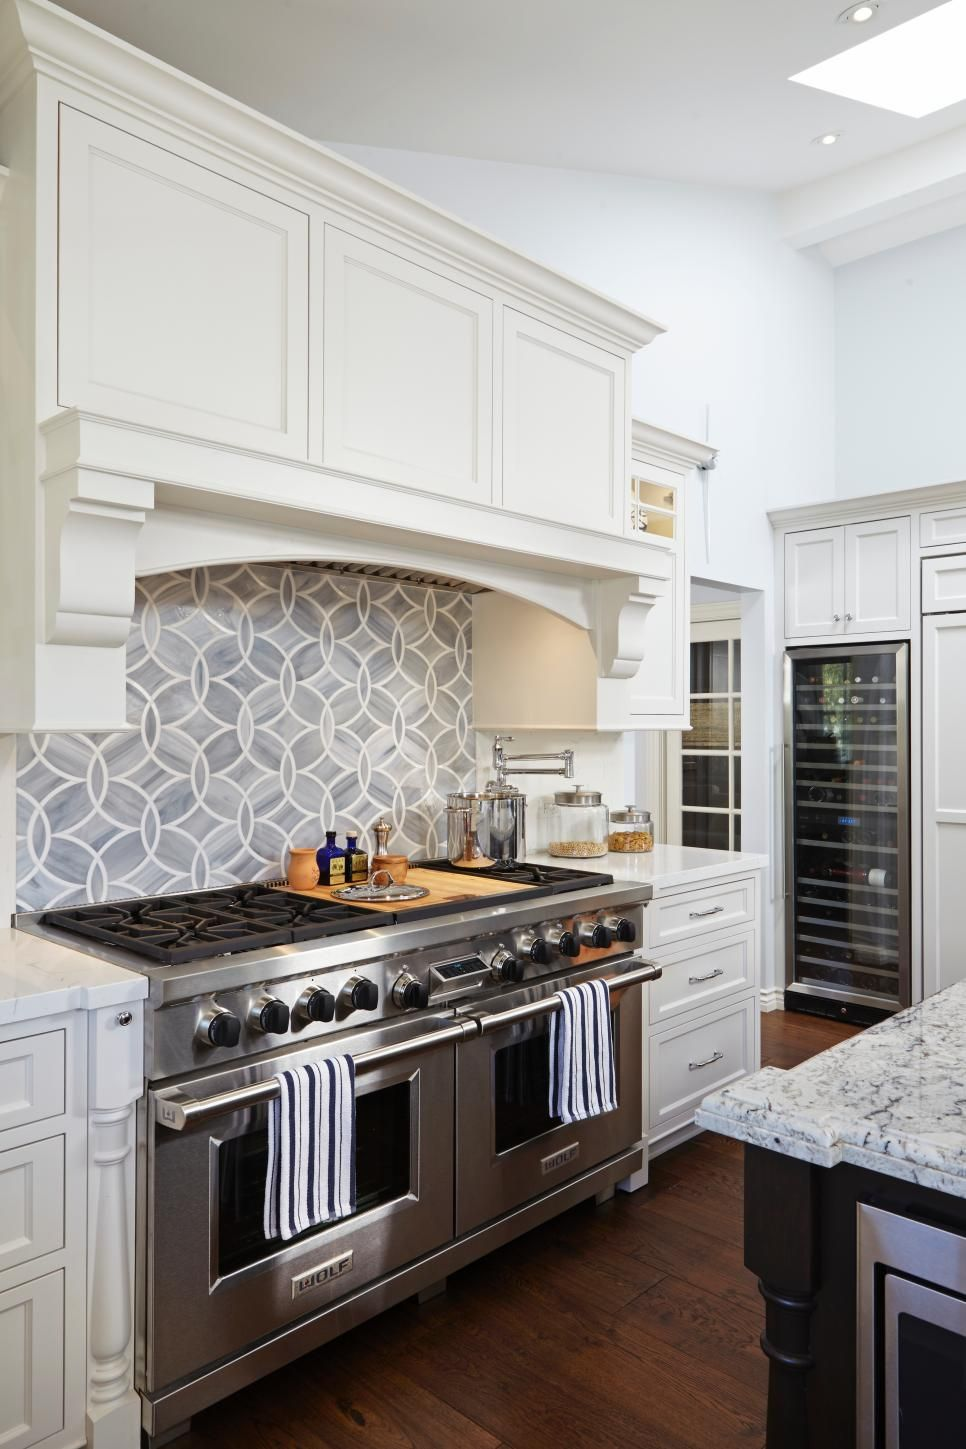 Geometric Gray And White Tile Provide A Modern Backsplash Above